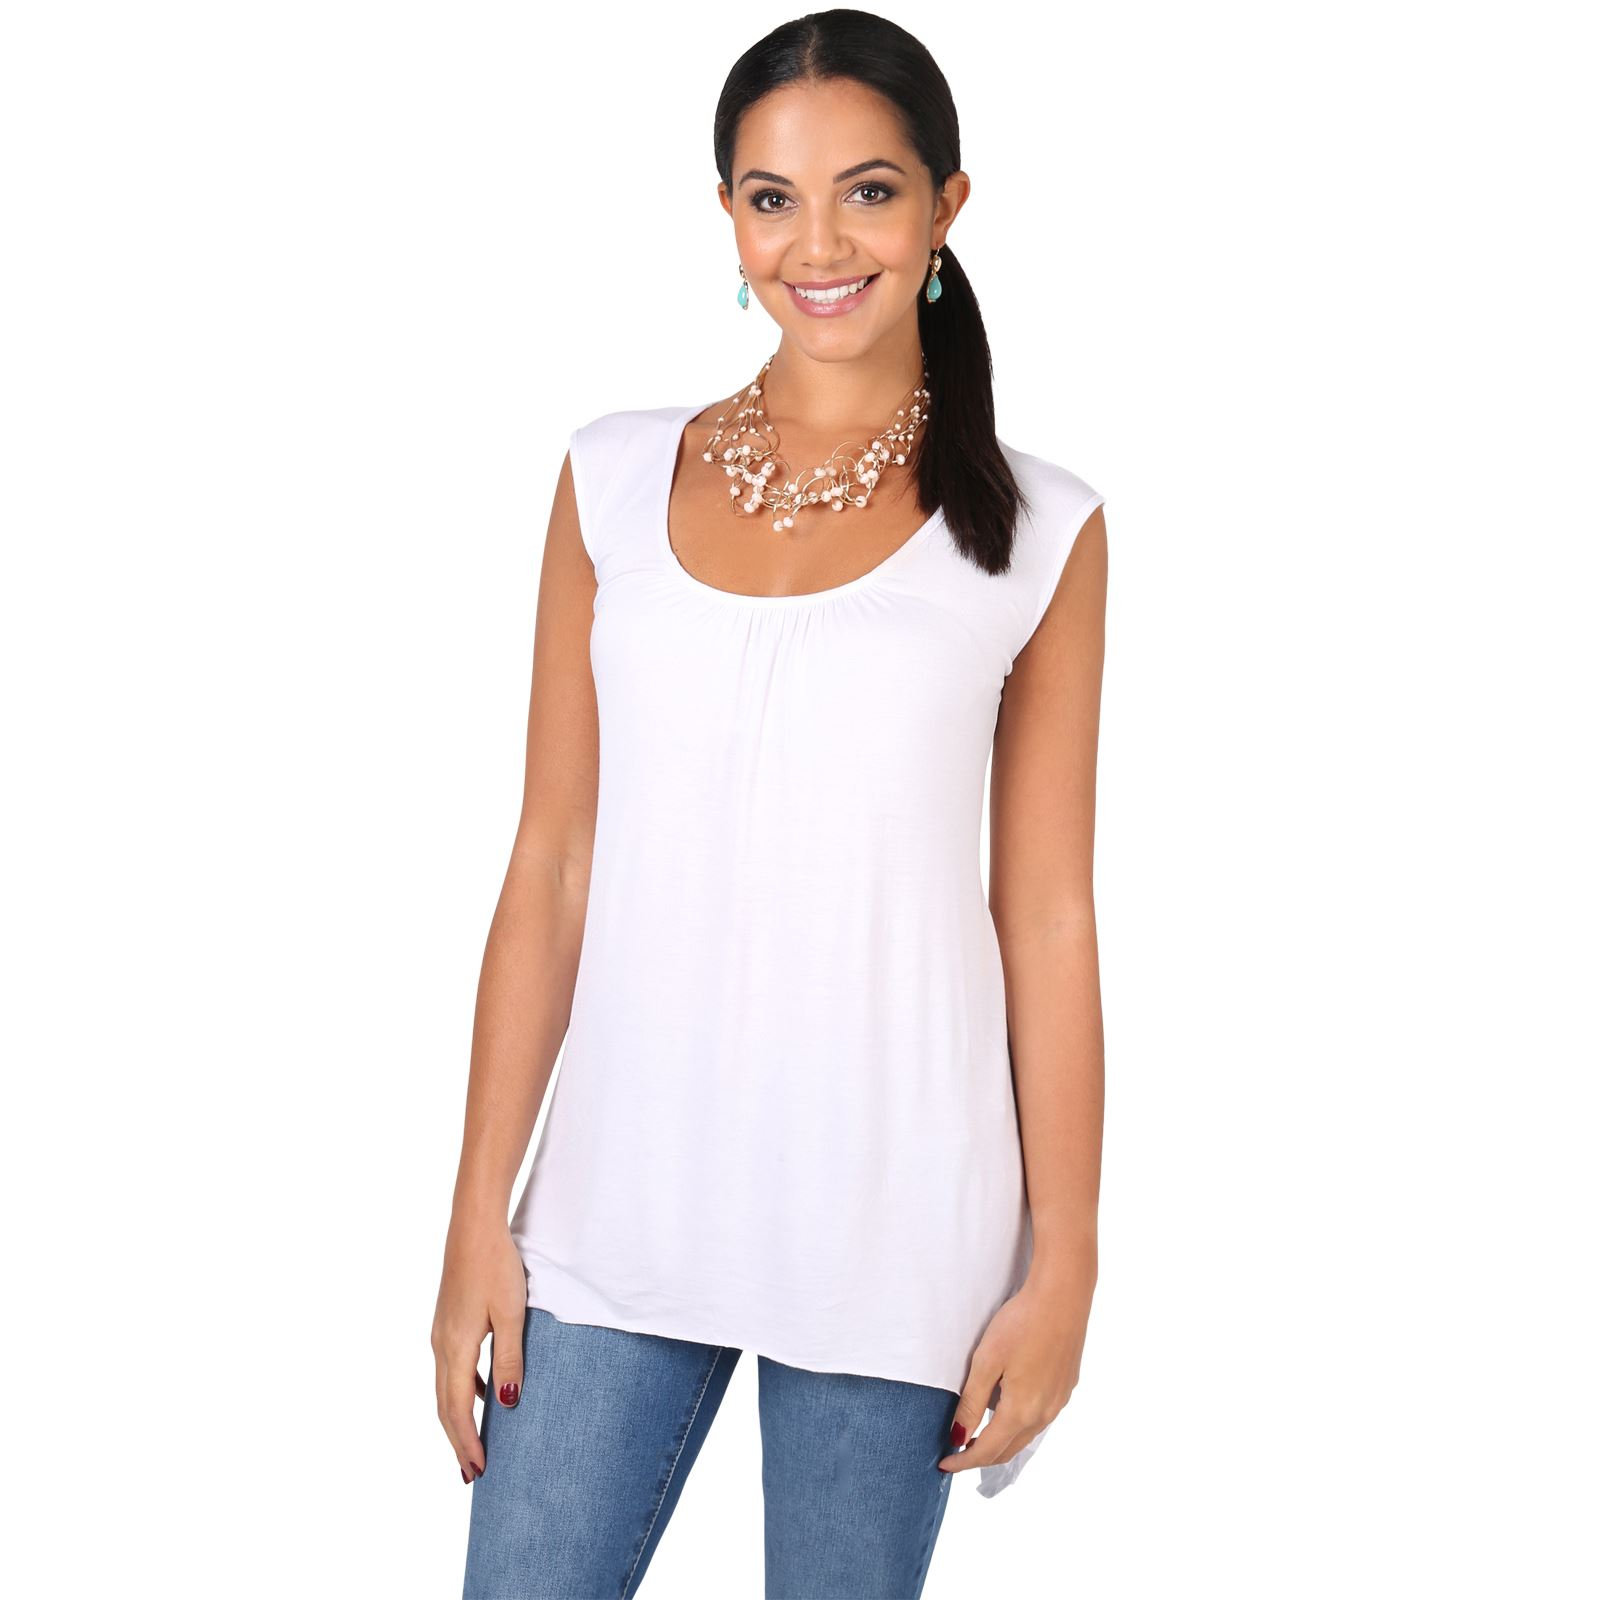 Shop Online at optimizings.cf for the Latest Womens Sleeveless Shirts, Tunics, Blouses, Halter Tops & More Womens Tops. FREE SHIPPING AVAILABLE! Macy's Presents: The Edit- A curated mix of fashion and inspiration Check It Out. T-Shirt (28) Tank Tops () Tunic (29).